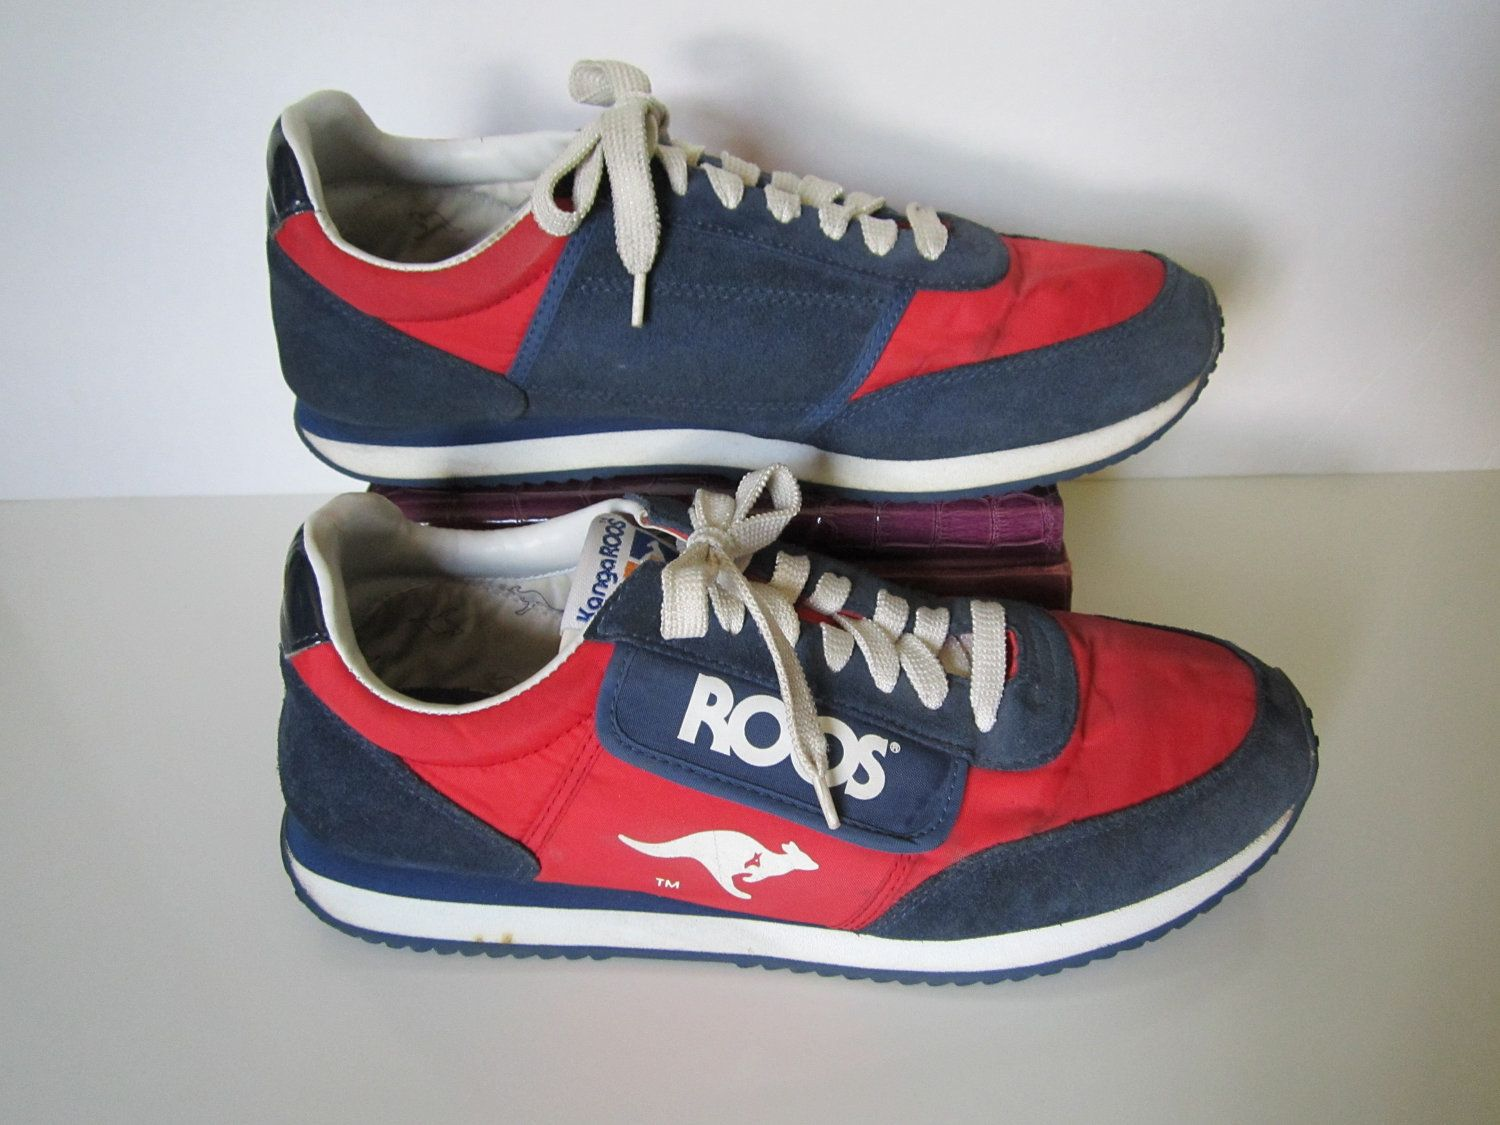 c0a43498e195 1980 s Vintage KangaROOS Red Blue Tennis Shoes Mens 10.  45.00